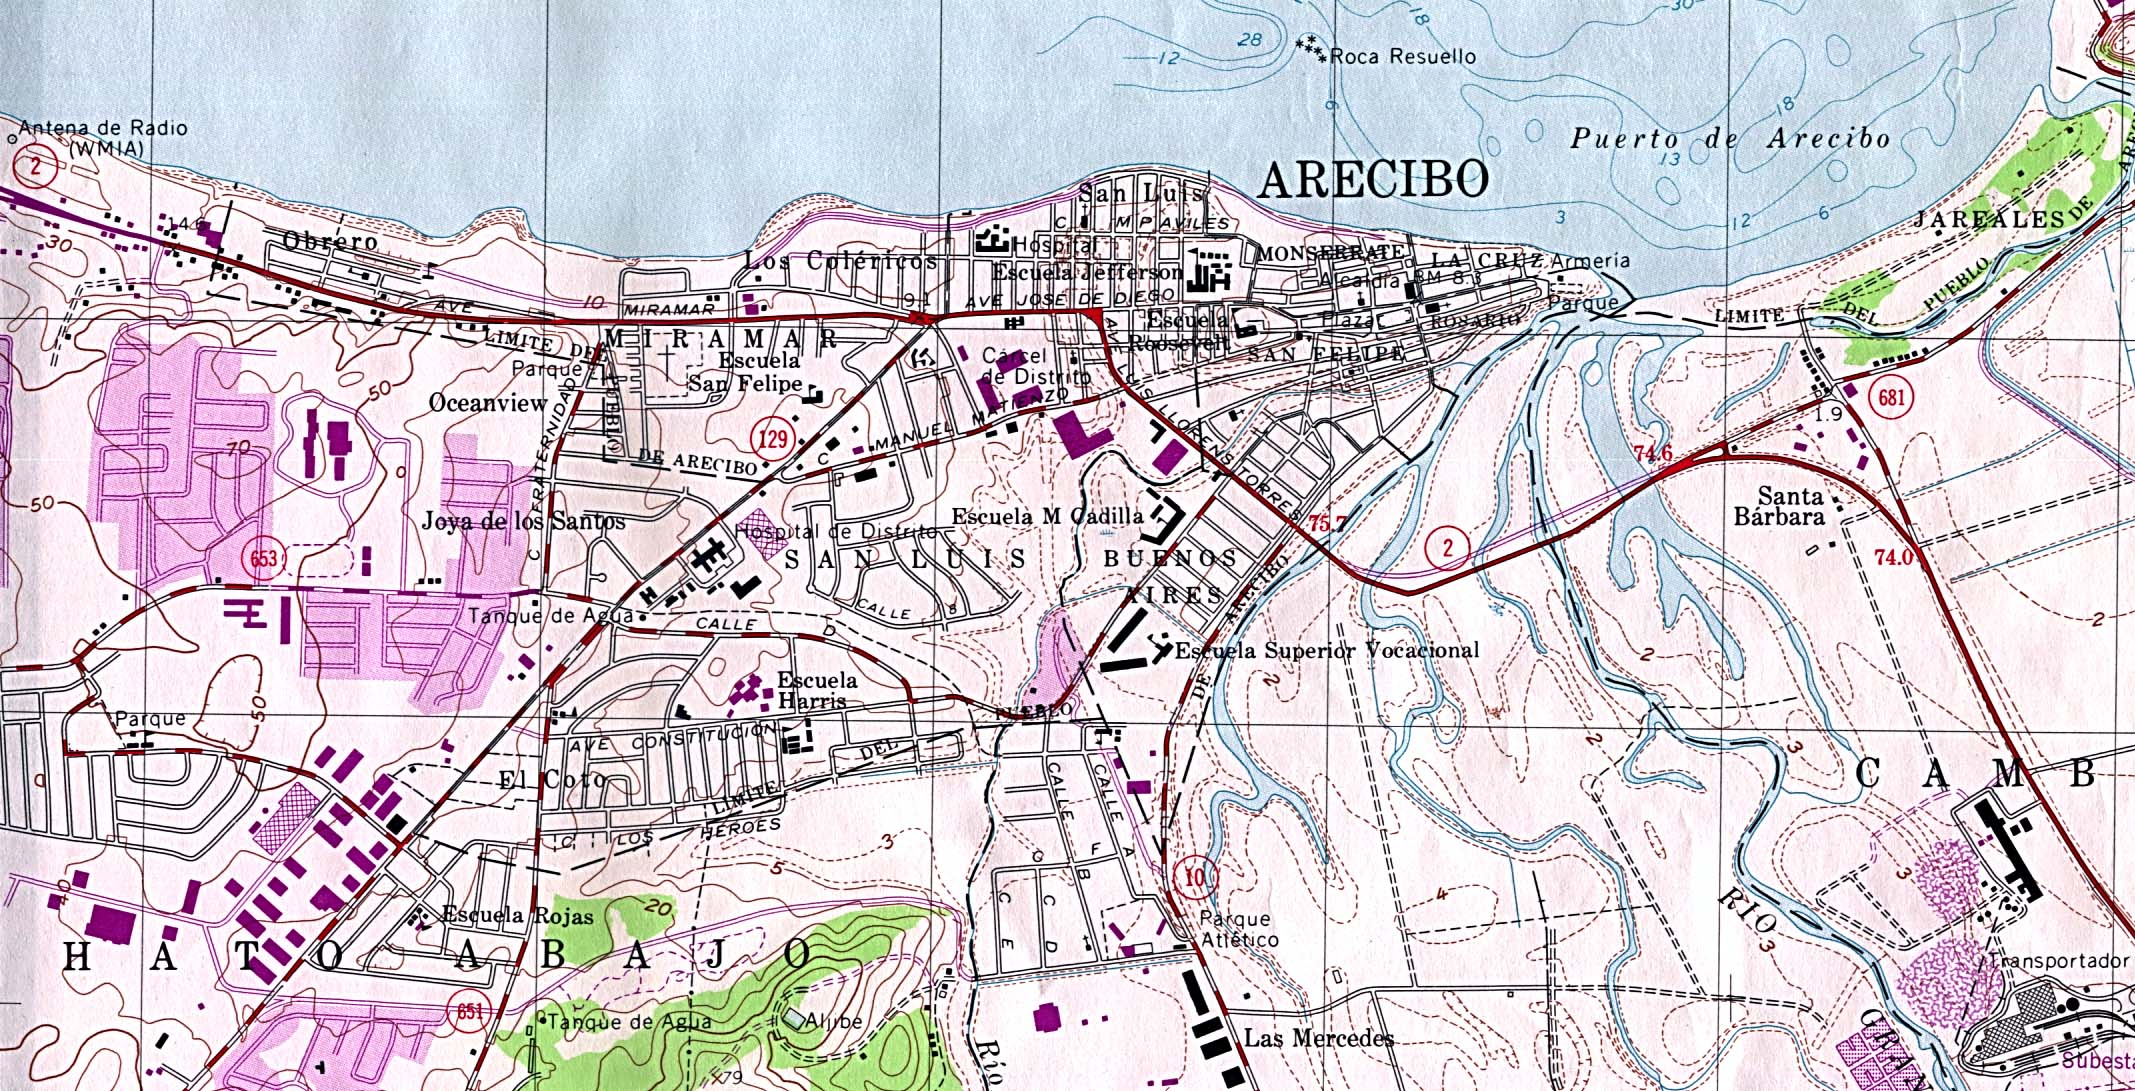 Arecibo City Map, Puerto Rico